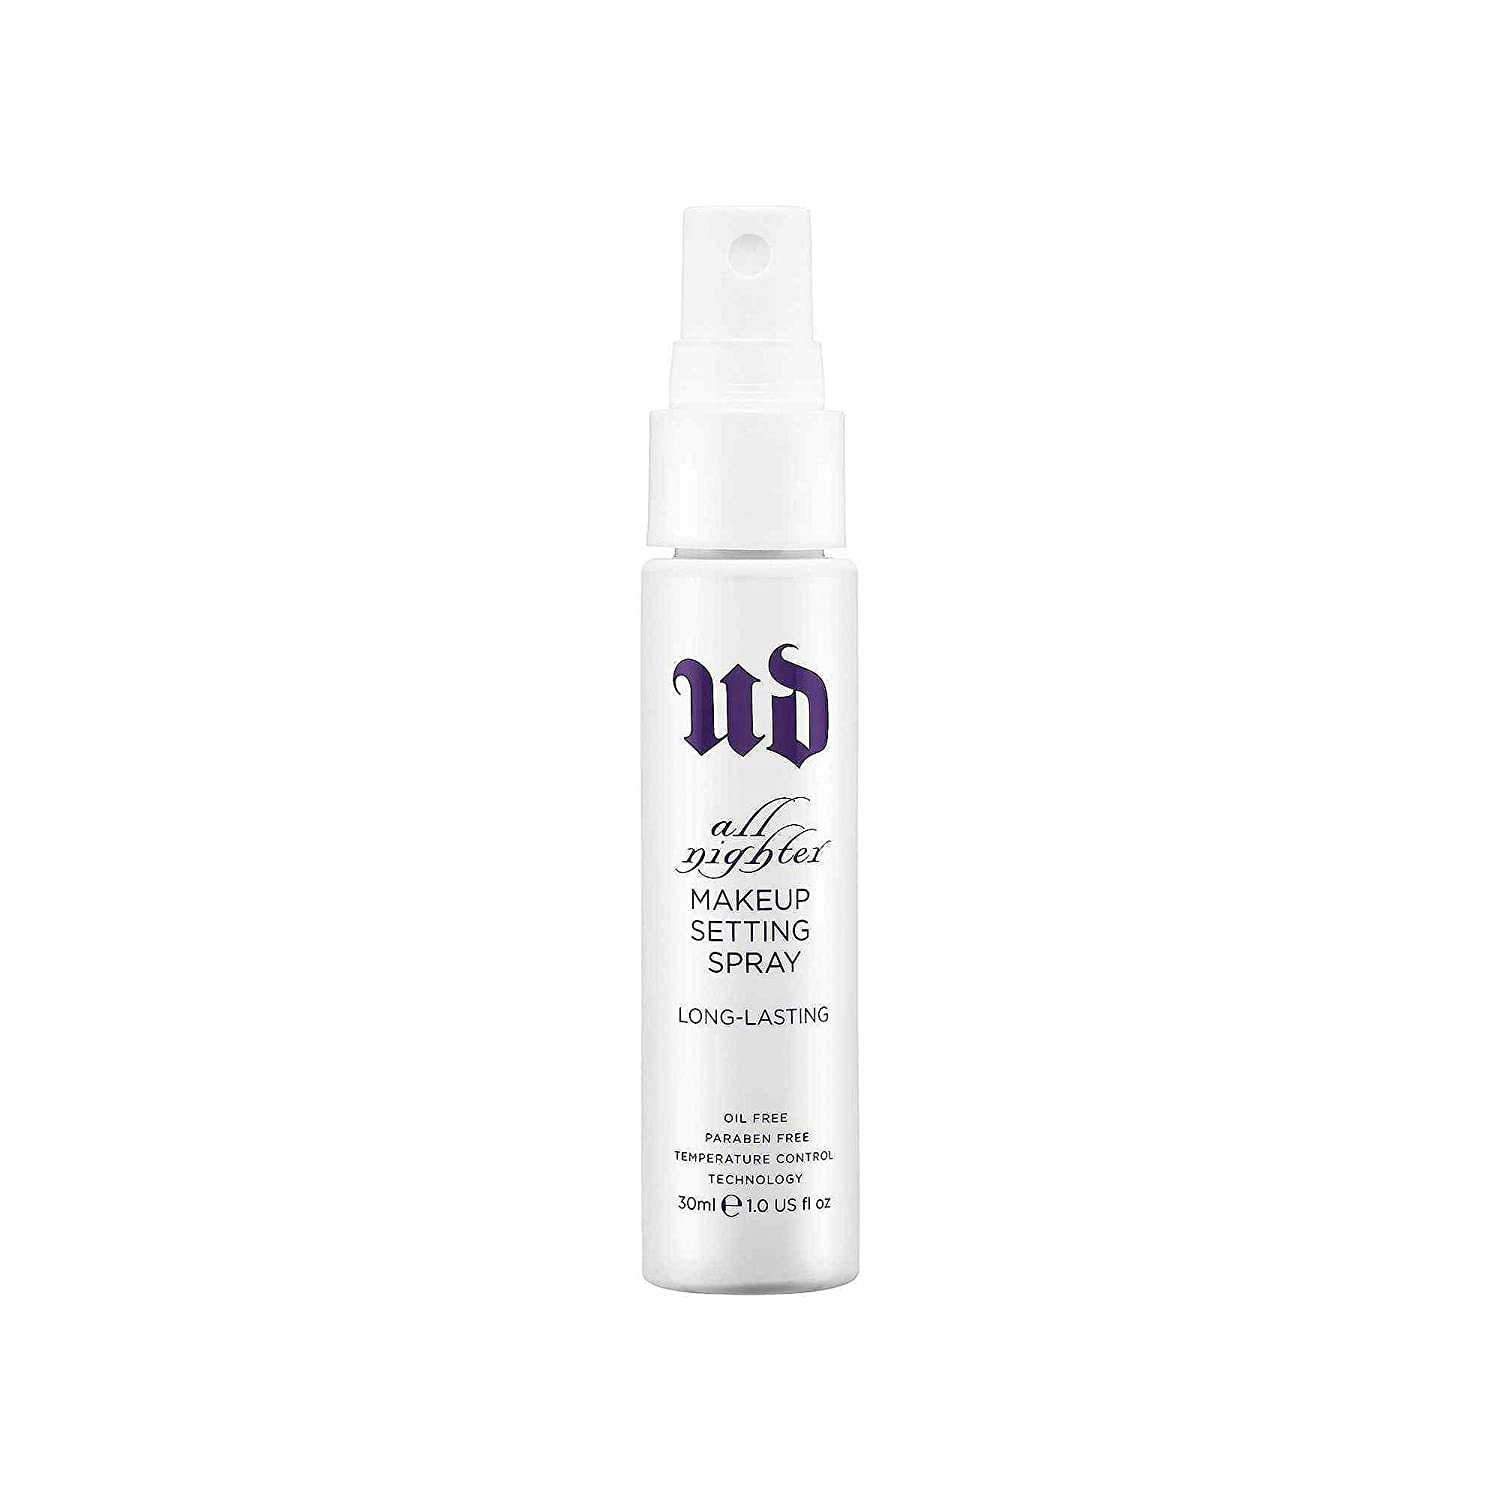 Urban Decay All Nighter Makeup Setting Spray Long Lasting 30ml